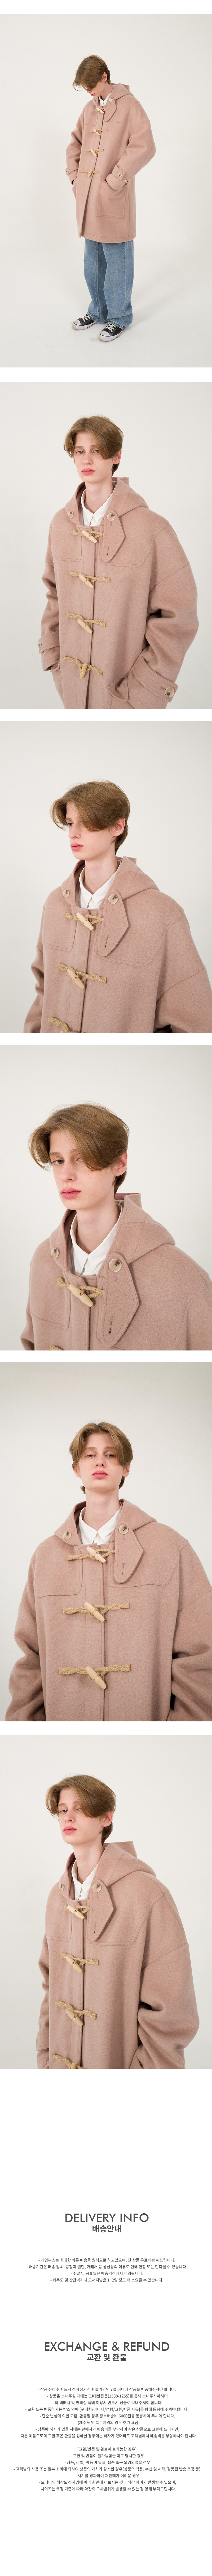 메인부스(MAINBOOTH) 9F Oversized Duffle Coat(PINK)